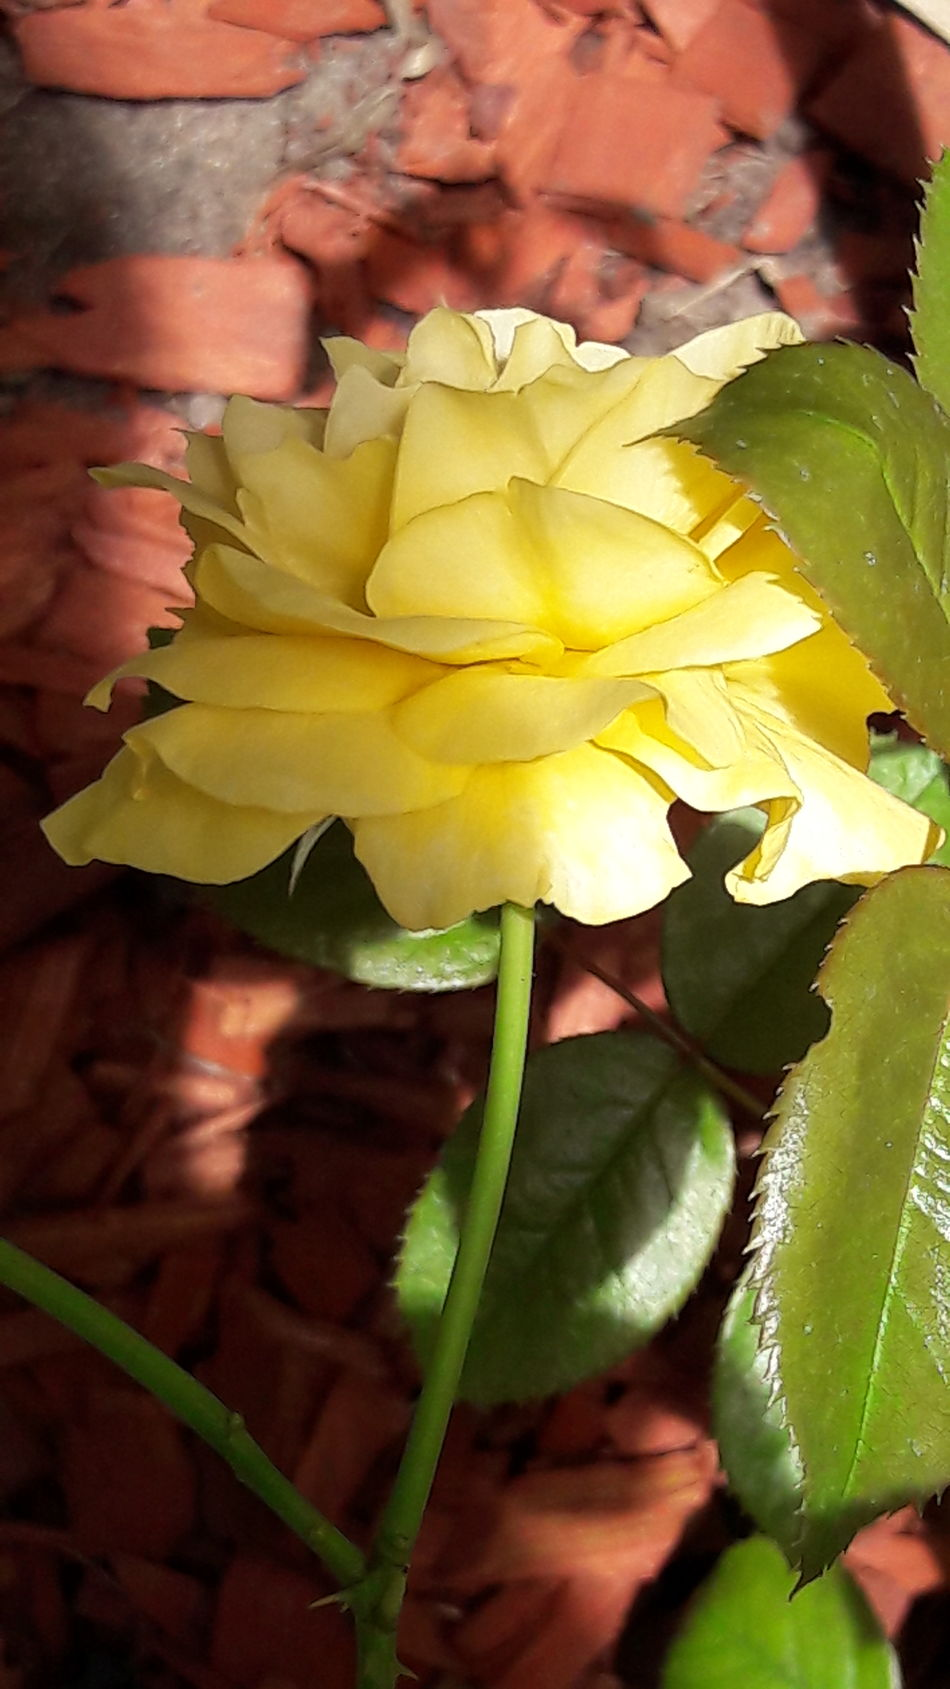 I'm blessed to have lovely flowers on my street. Yellow Leaf Close-up Flower Backgrounds Nature Plant Flower Head No People Day Outdoors Fragility Freshness Natural Environment Sunny Days Popular Photos Sunny Natural Light Roses On My Street